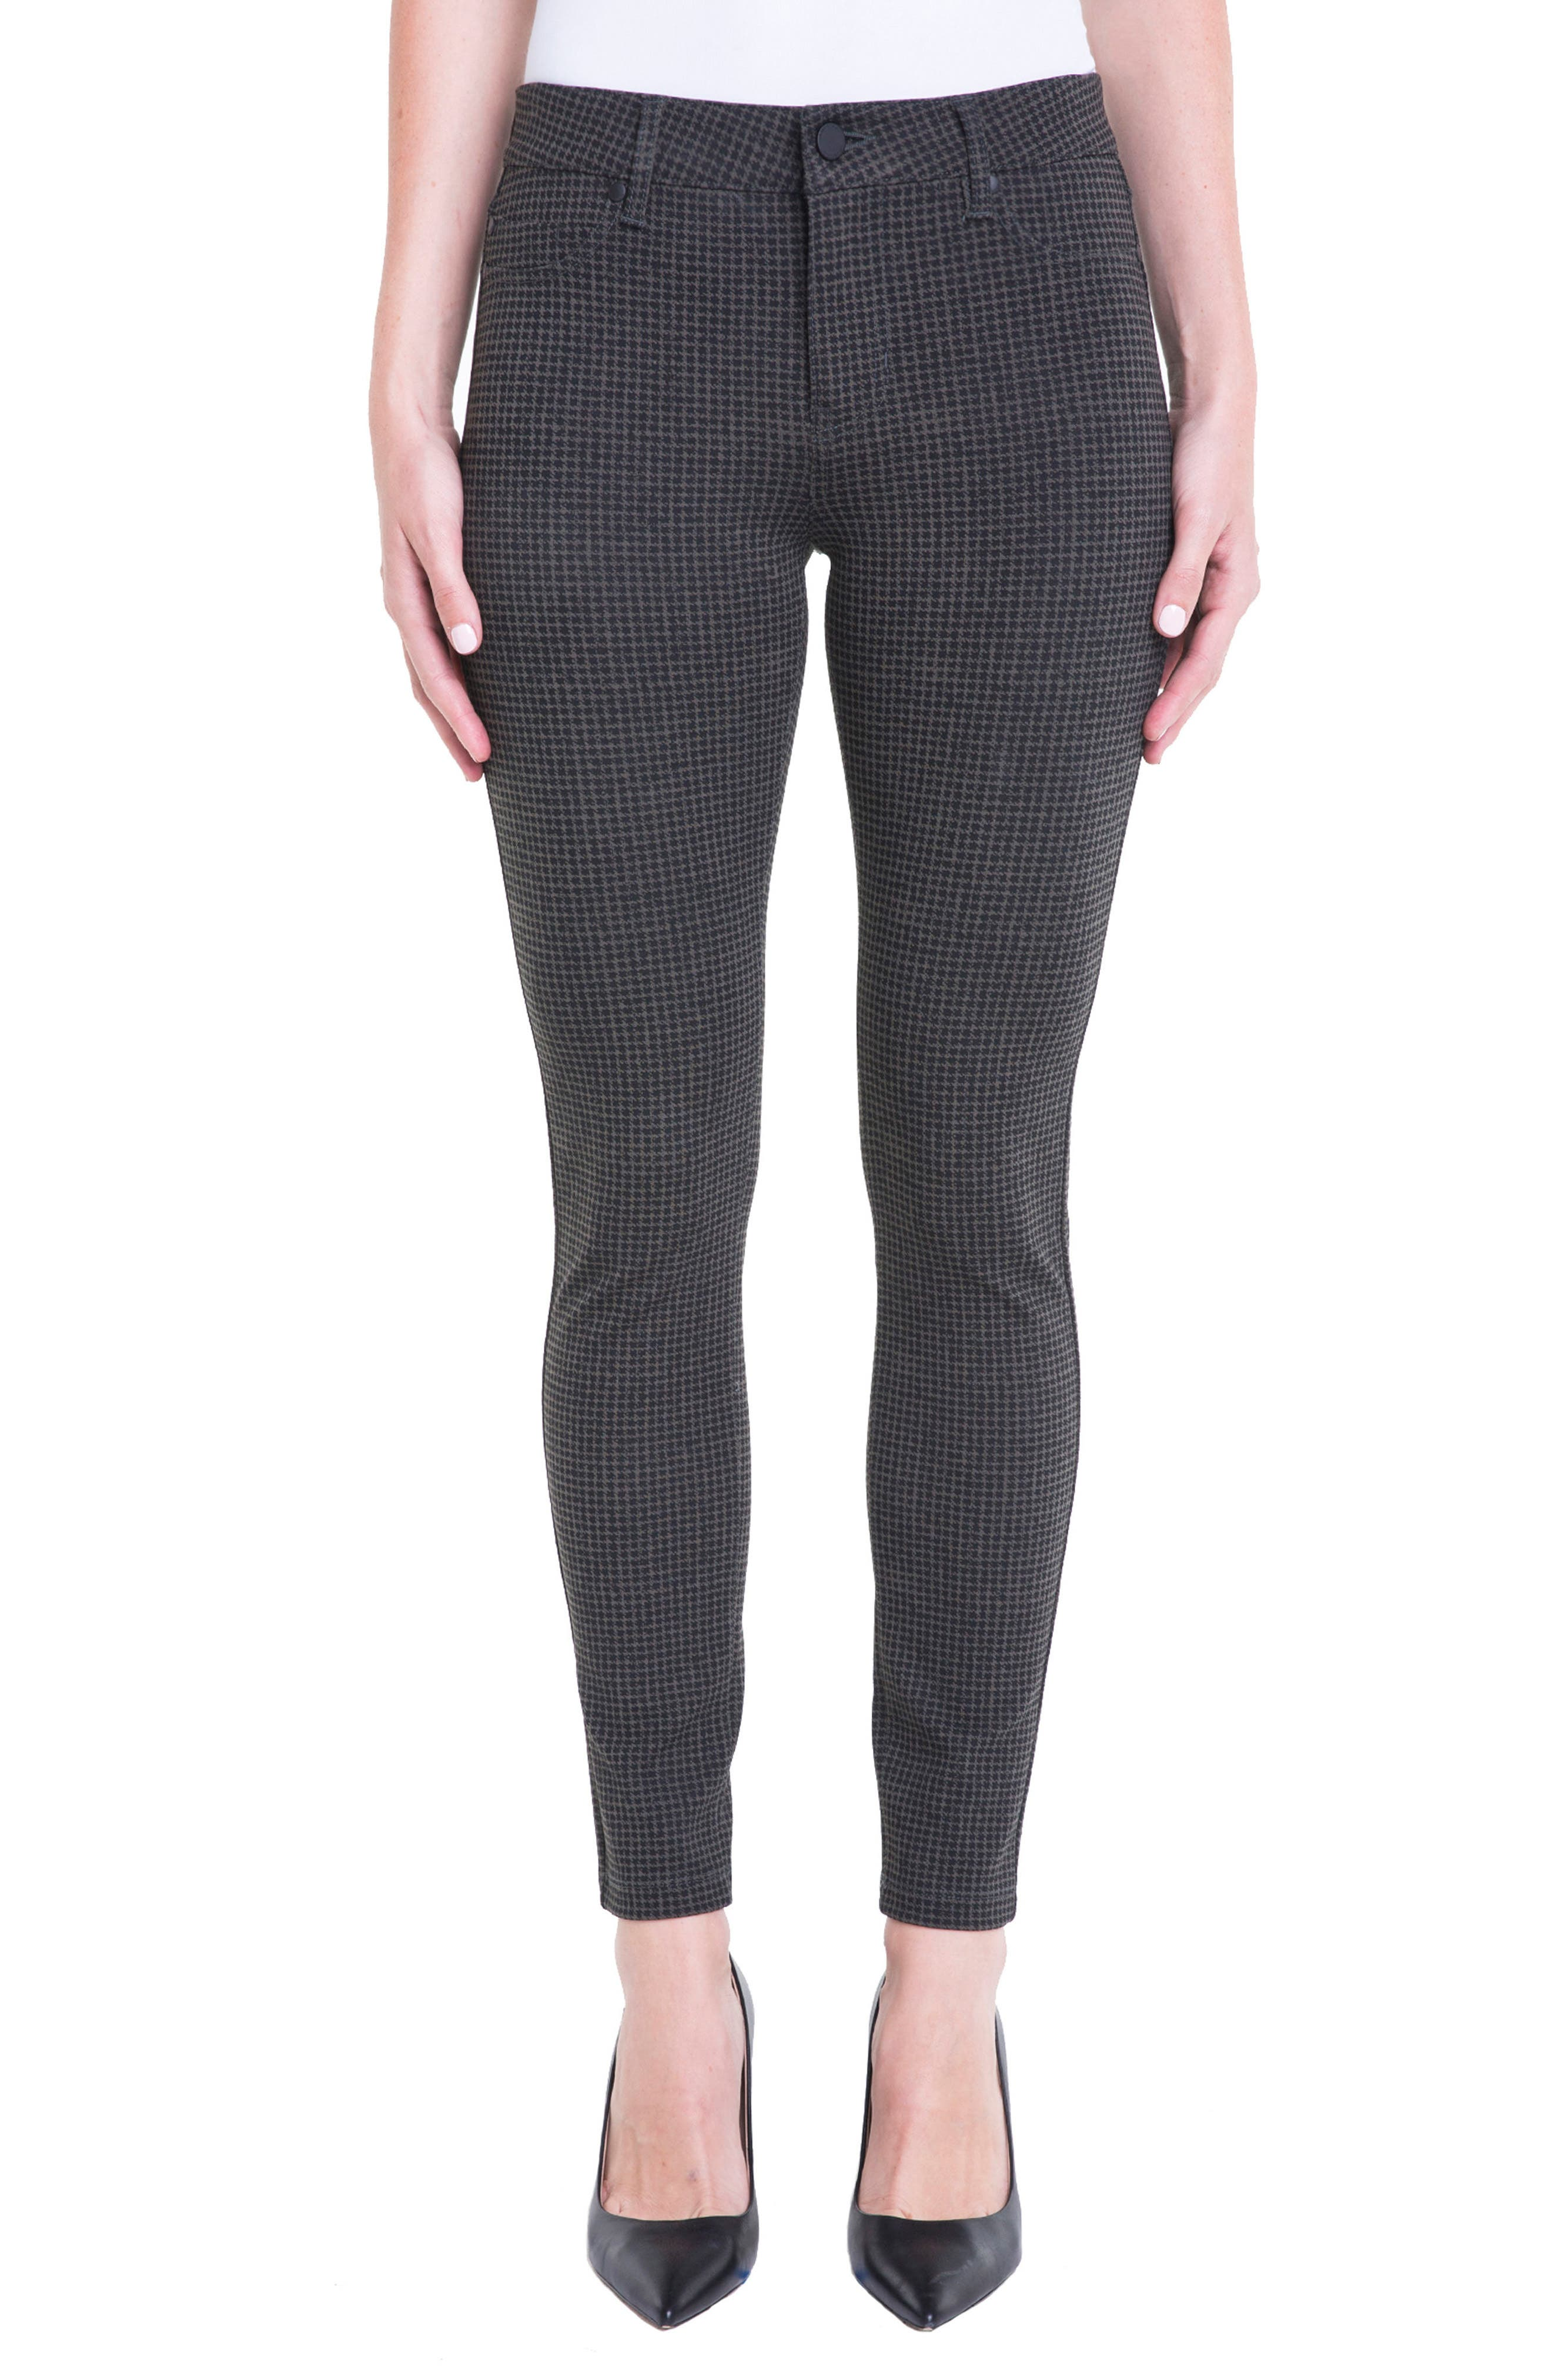 Main Image - Liverpool Jeans Company Houndstooth Super Skinny Ponte Knit Pants